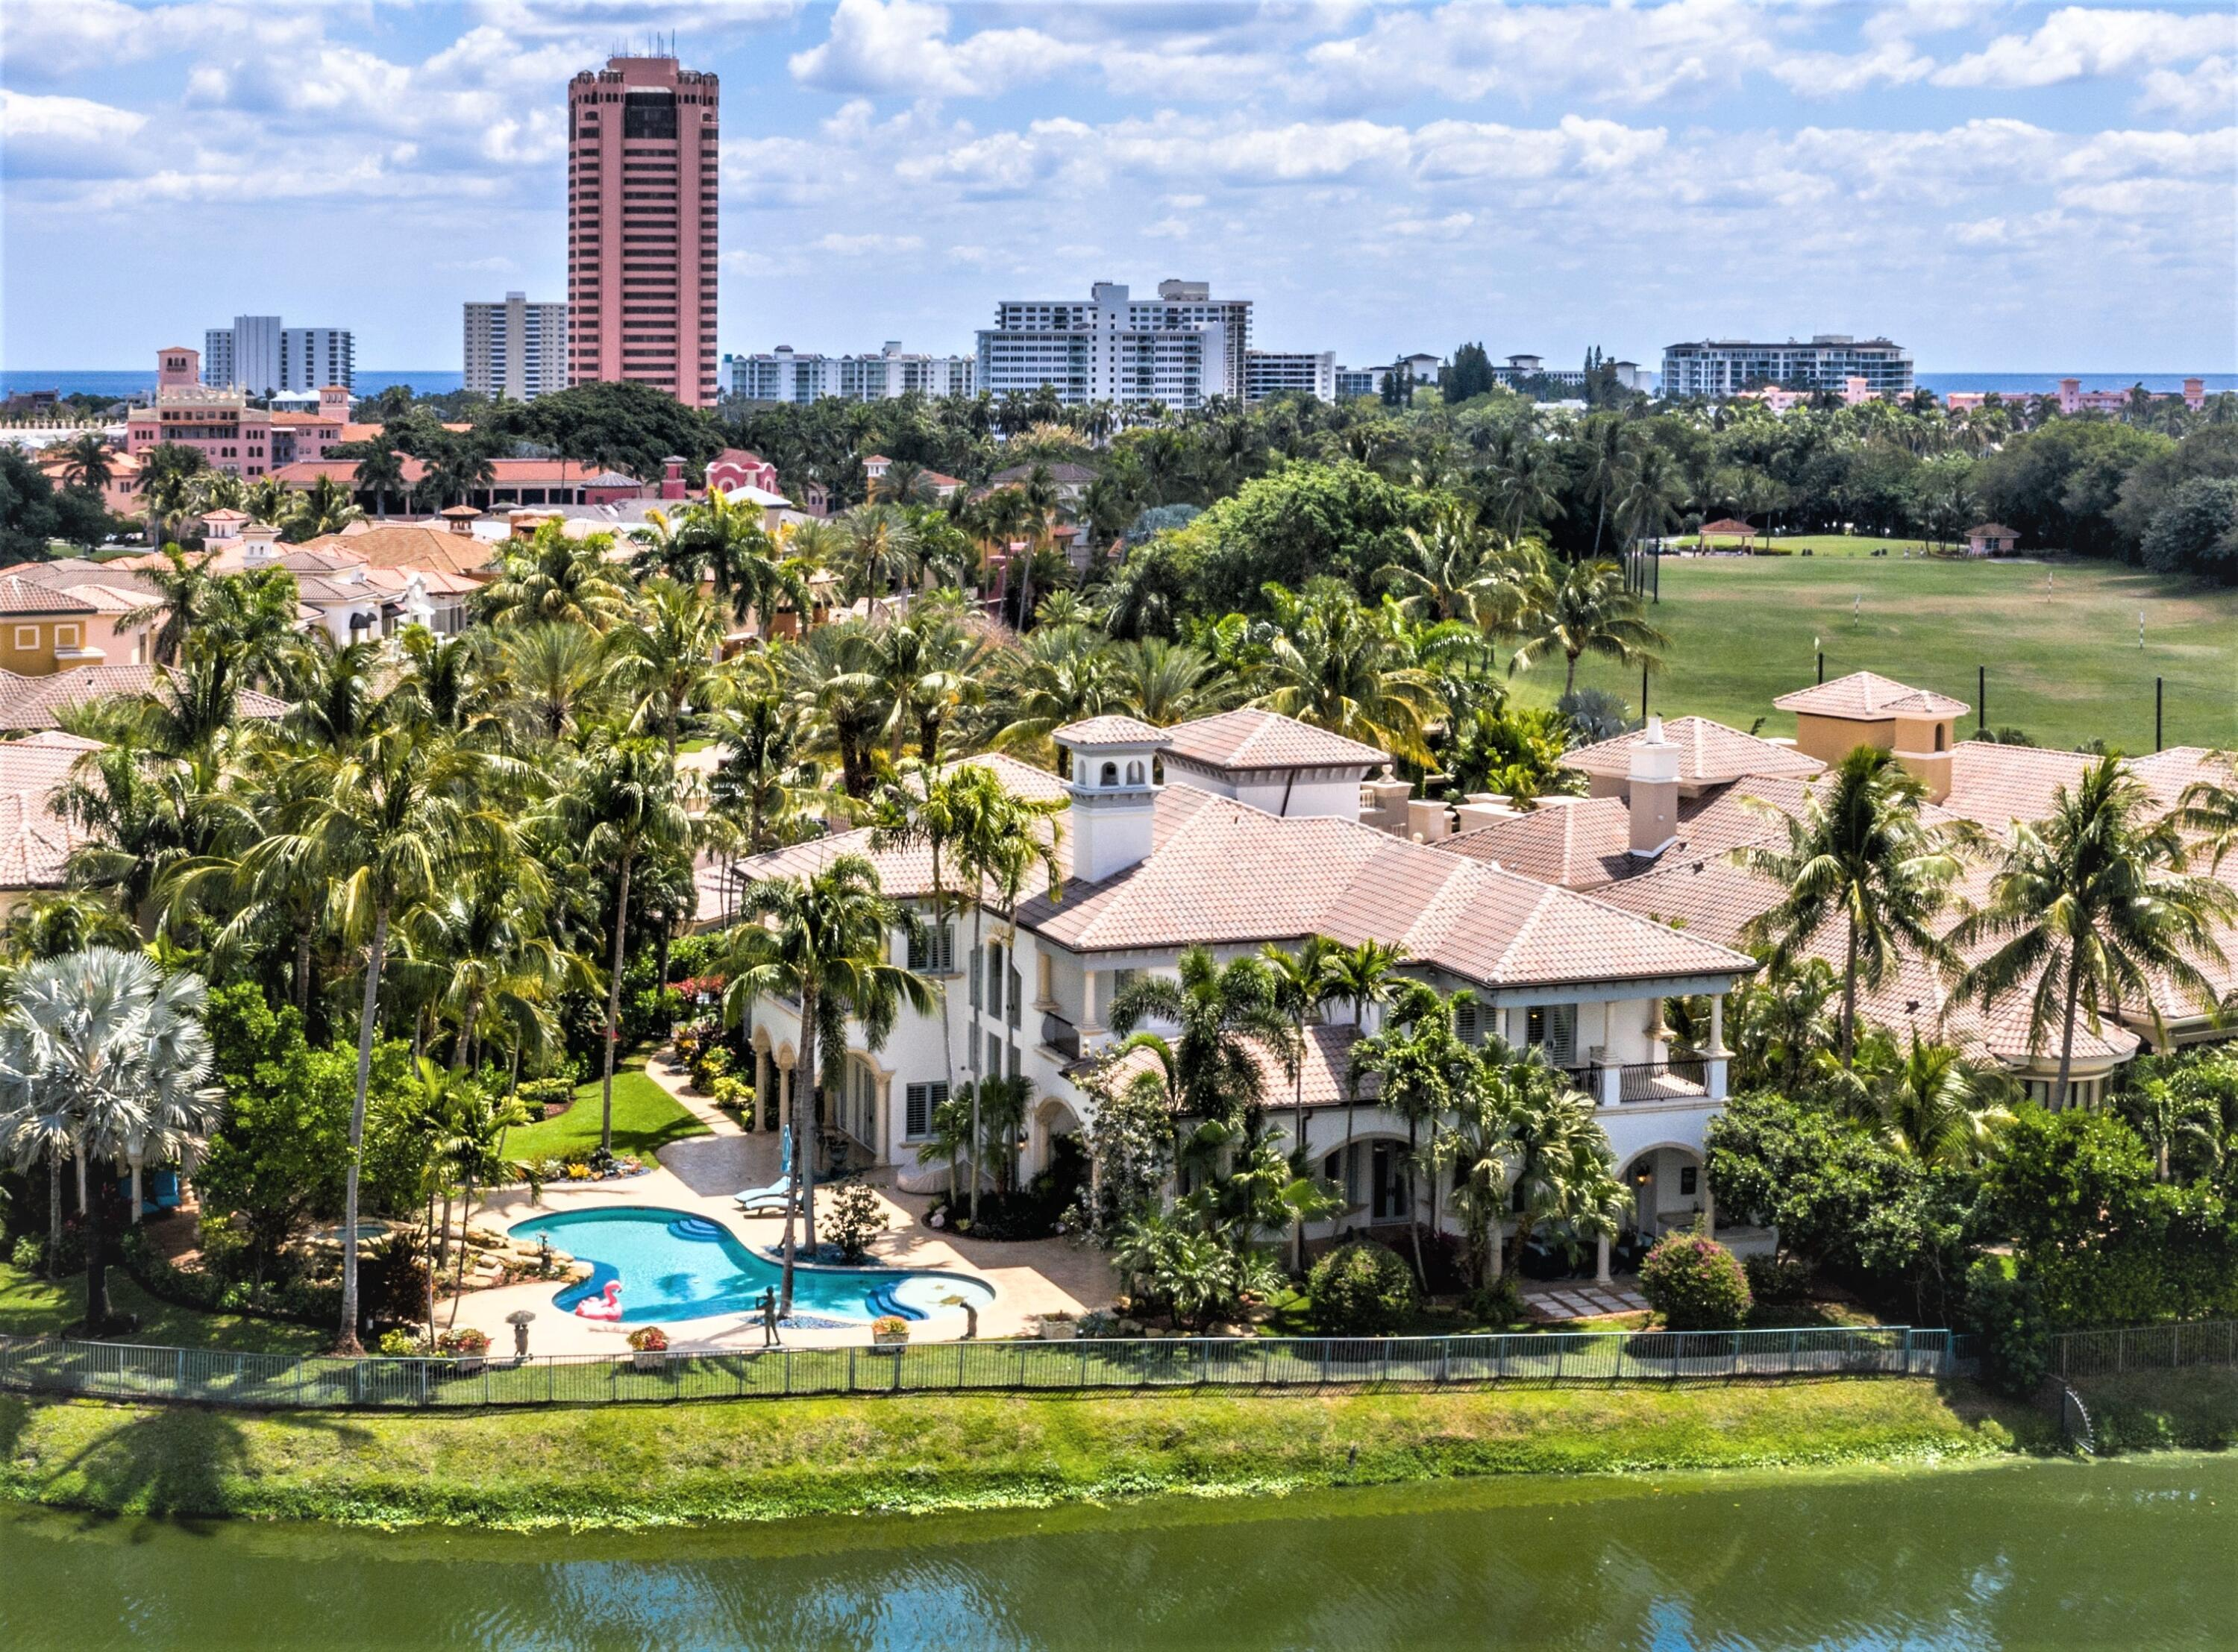 """Sited on OVER 1/2 Acre on the grounds of the Internationally renowned BOCA RATON RESORT & CLUB, a Waldorf Astoria Resort, in the Luxurious Private, Guard Gated Enclave of Mizner Lake Estates. 313 Mizner Lake Estates Drive is an extraordinary estate encompassing over 9,709 total sq/ft. Featuring 4 spacious en-suite bedrooms, 7 indulgent baths, an elevator, full house generator, impact windows, and a gated motor court w/ 3-car garage, this two-story residence offers opulent living with the sophisticated leisure and amenities of the Boca Resort at your fingertips.  With over 200' of lake and fairway frontage, you will enjoy gracious resort-style outdoor living spaces that cater to grand-scale entertainment with tropical grounds landscaped to perfection! The written and verbal information provided including but not limited to prices, measurements, square footages, and lot sizes have been obtained and conveyed from third party sources. The Sellers and Listing Company expressly disclaim any warranty or representation regarding all information. Prospective purchasers shall not rely on any written or verbal information provided when entering a contract for sale and purchase. In the event a Buyer defaults, no commission will be paid to either Broker on the Deposits retained by the Seller. """"No Commissions Paid until Title Passes."""""""